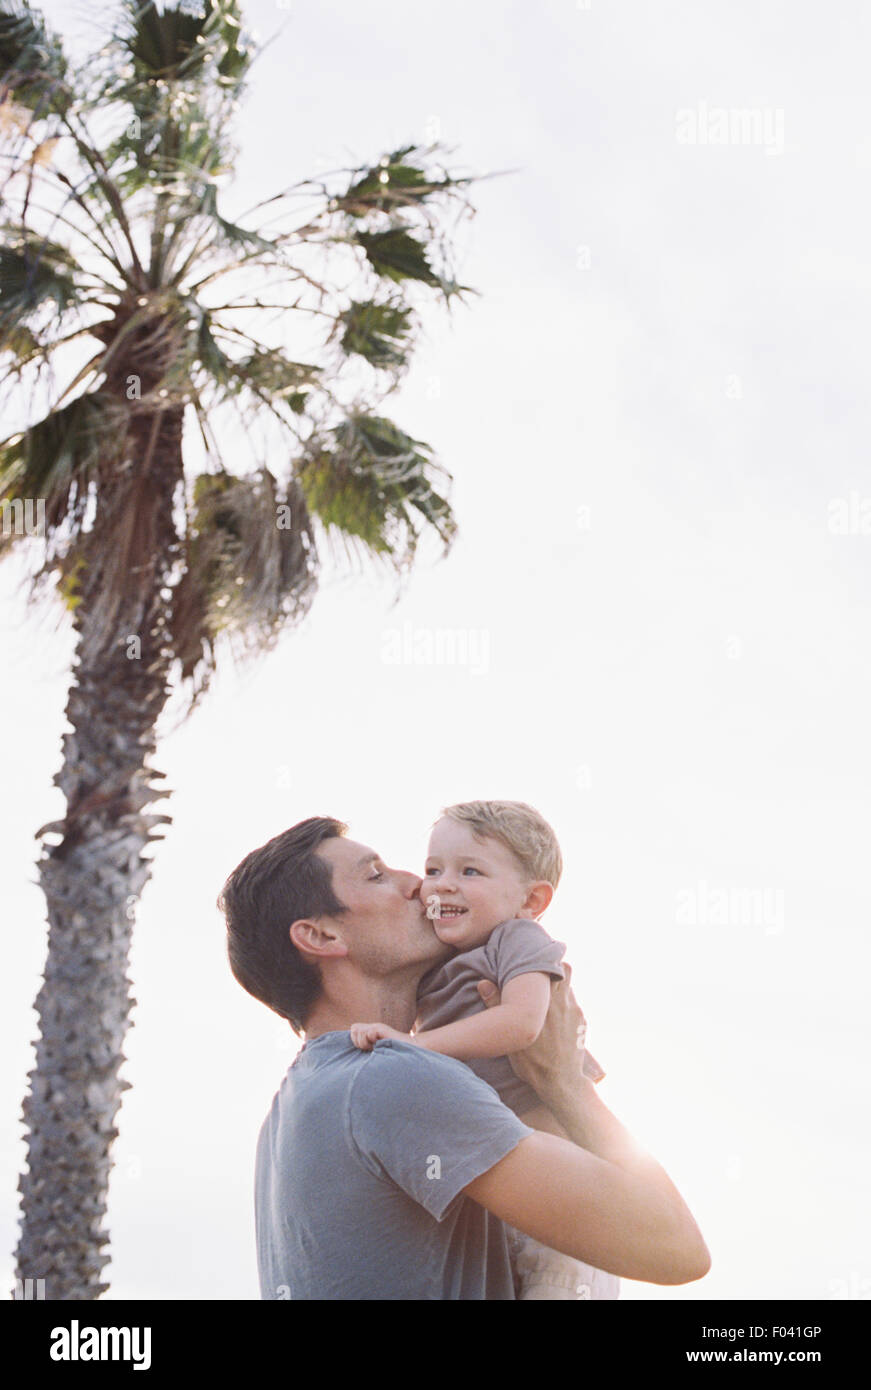 Man standing by a palm tree, carrying his young son in his arms, kissing him on the cheek. - Stock Image